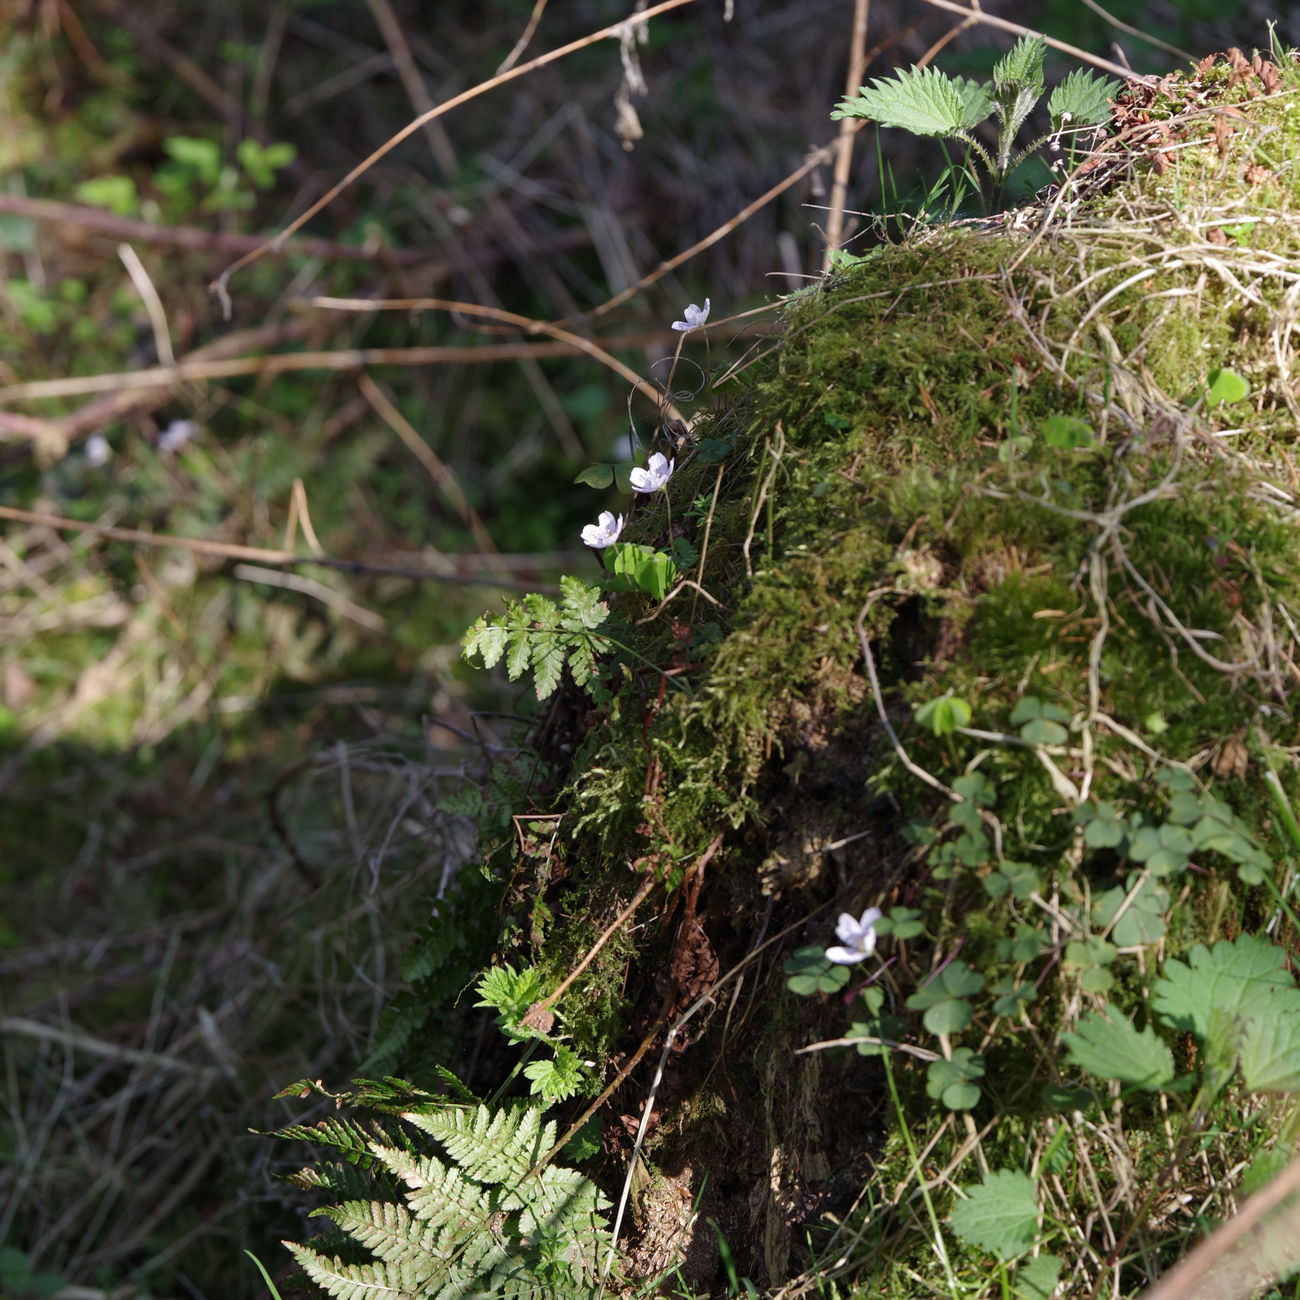 In the woods around Grotenburg - Anemone nemorosa Beauty In Nature Close-up Day Flowers Focus On Foreground Forest Growth Moss Nature No People Outdoors Spring Springtime Tranquility Tree Tree Trunk